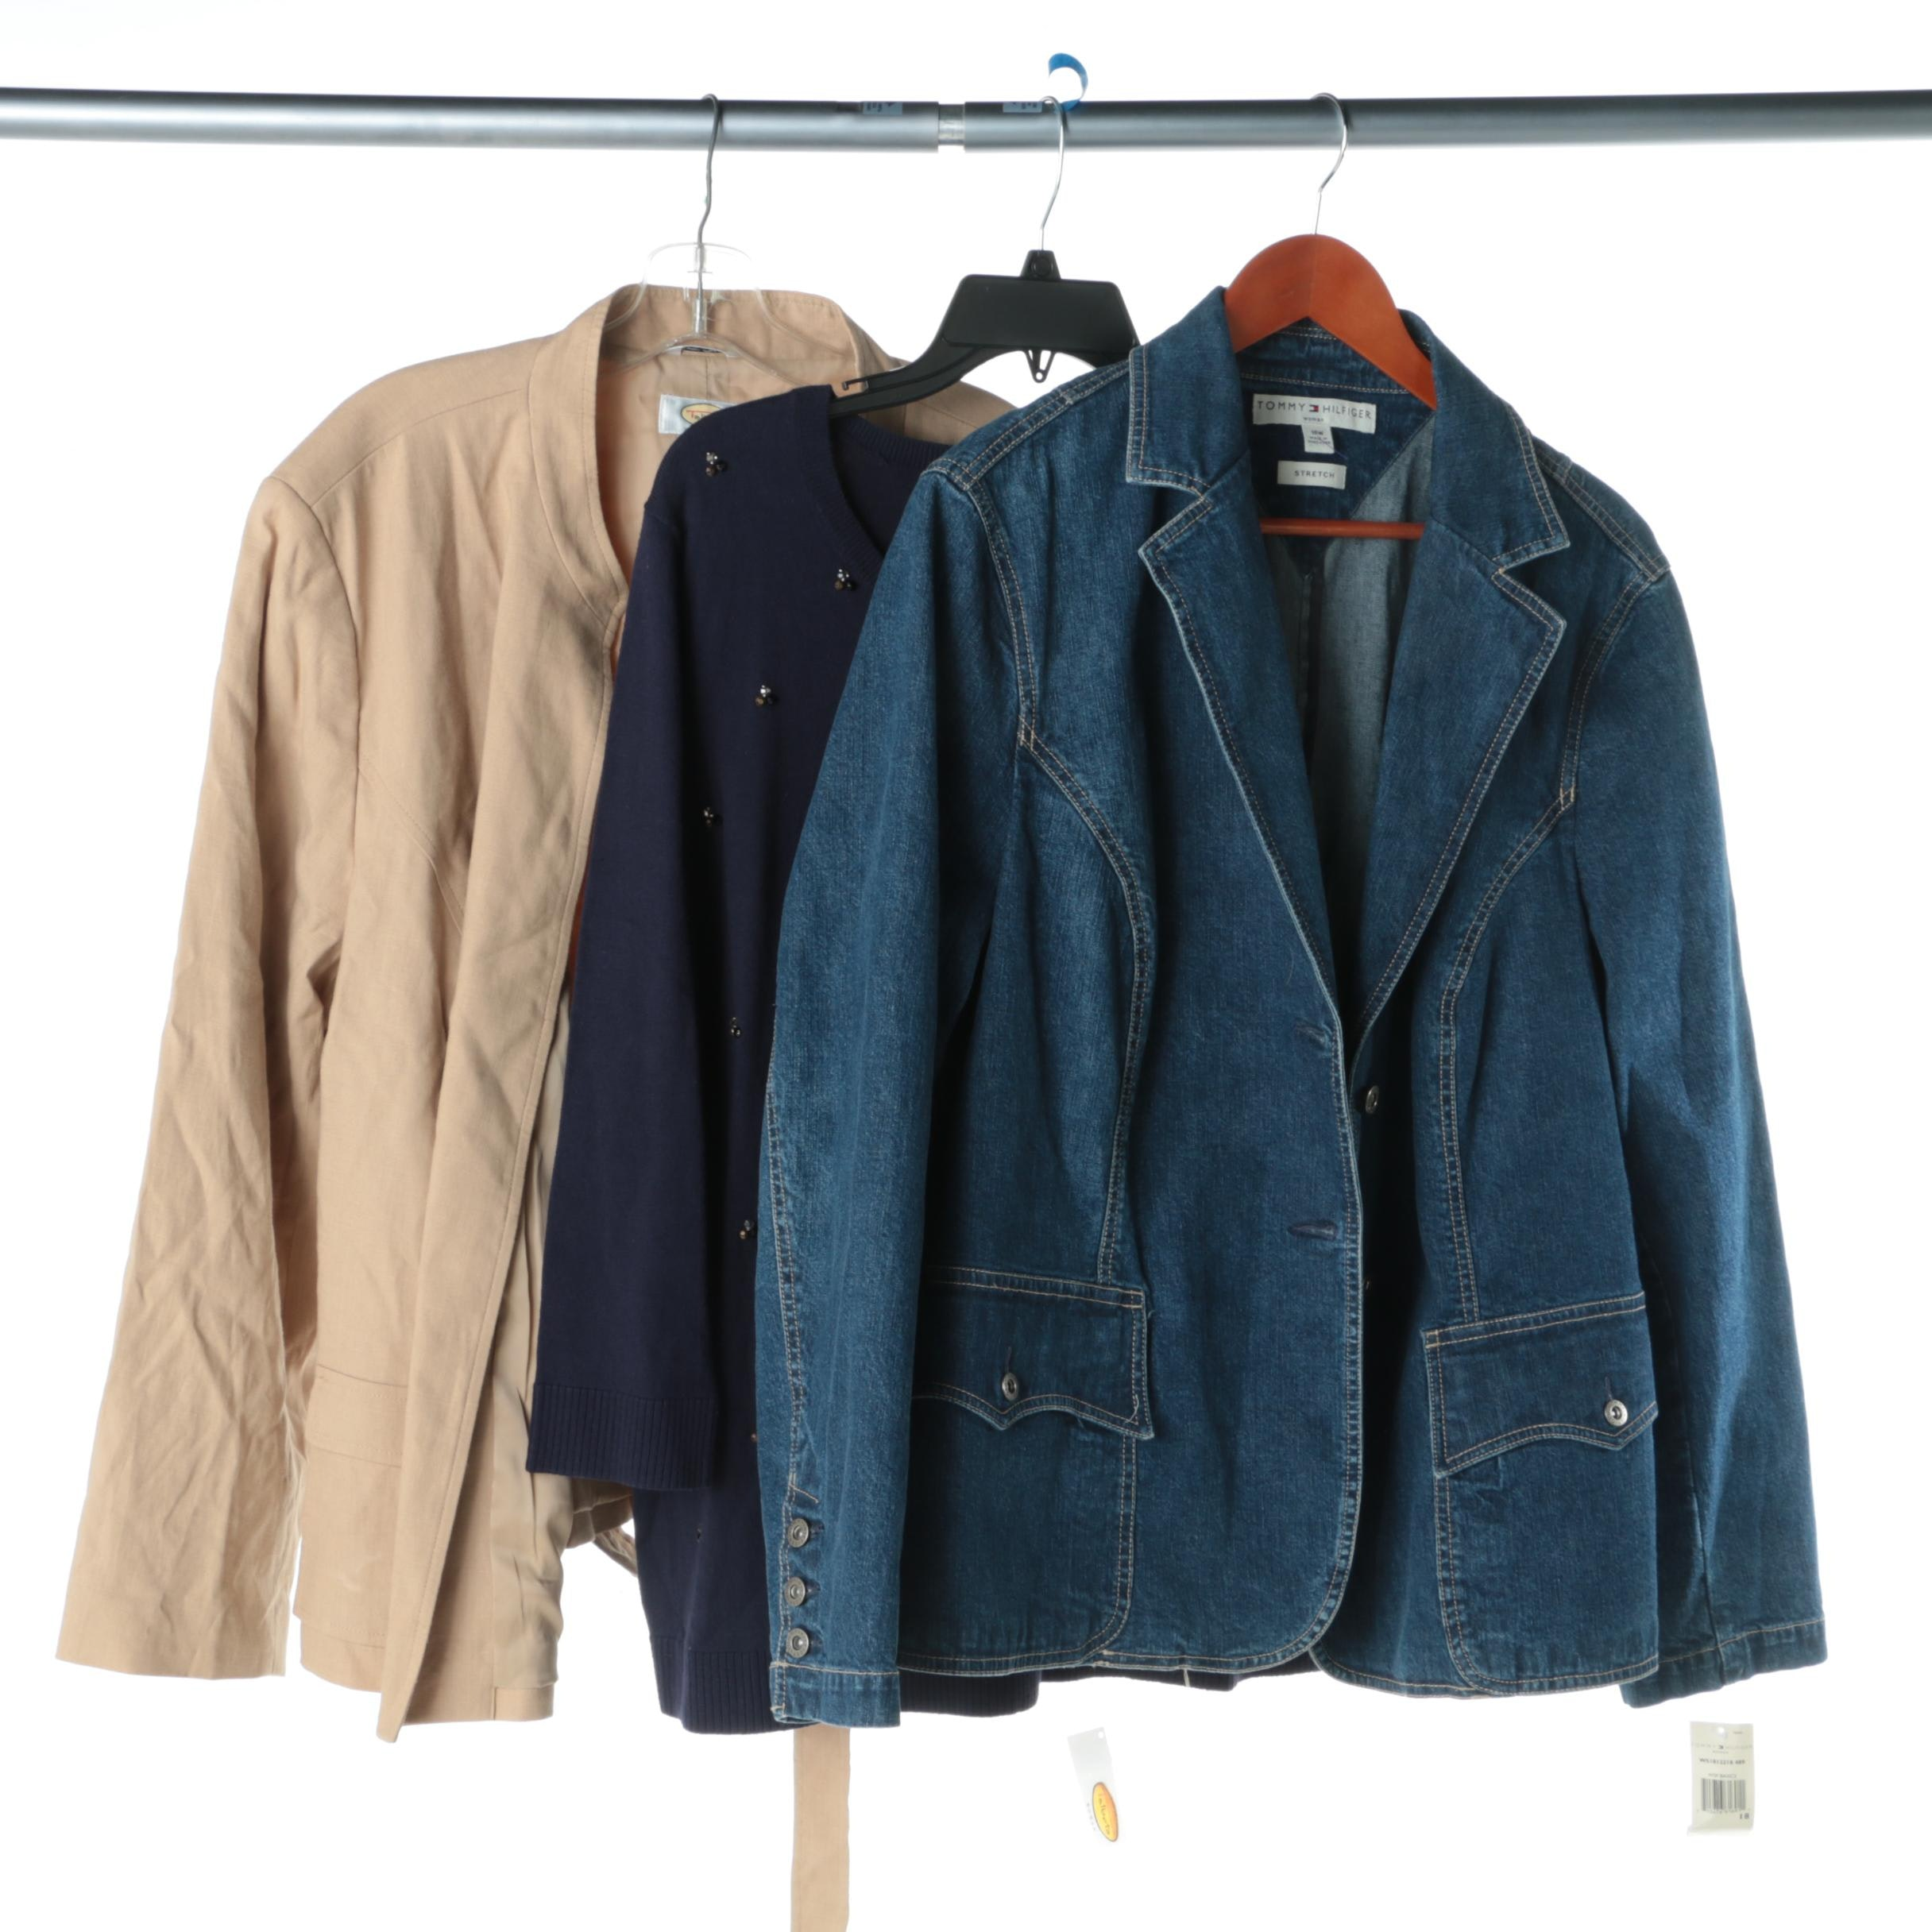 Women's Jackets and Sweater Including Tommy Hilfiger